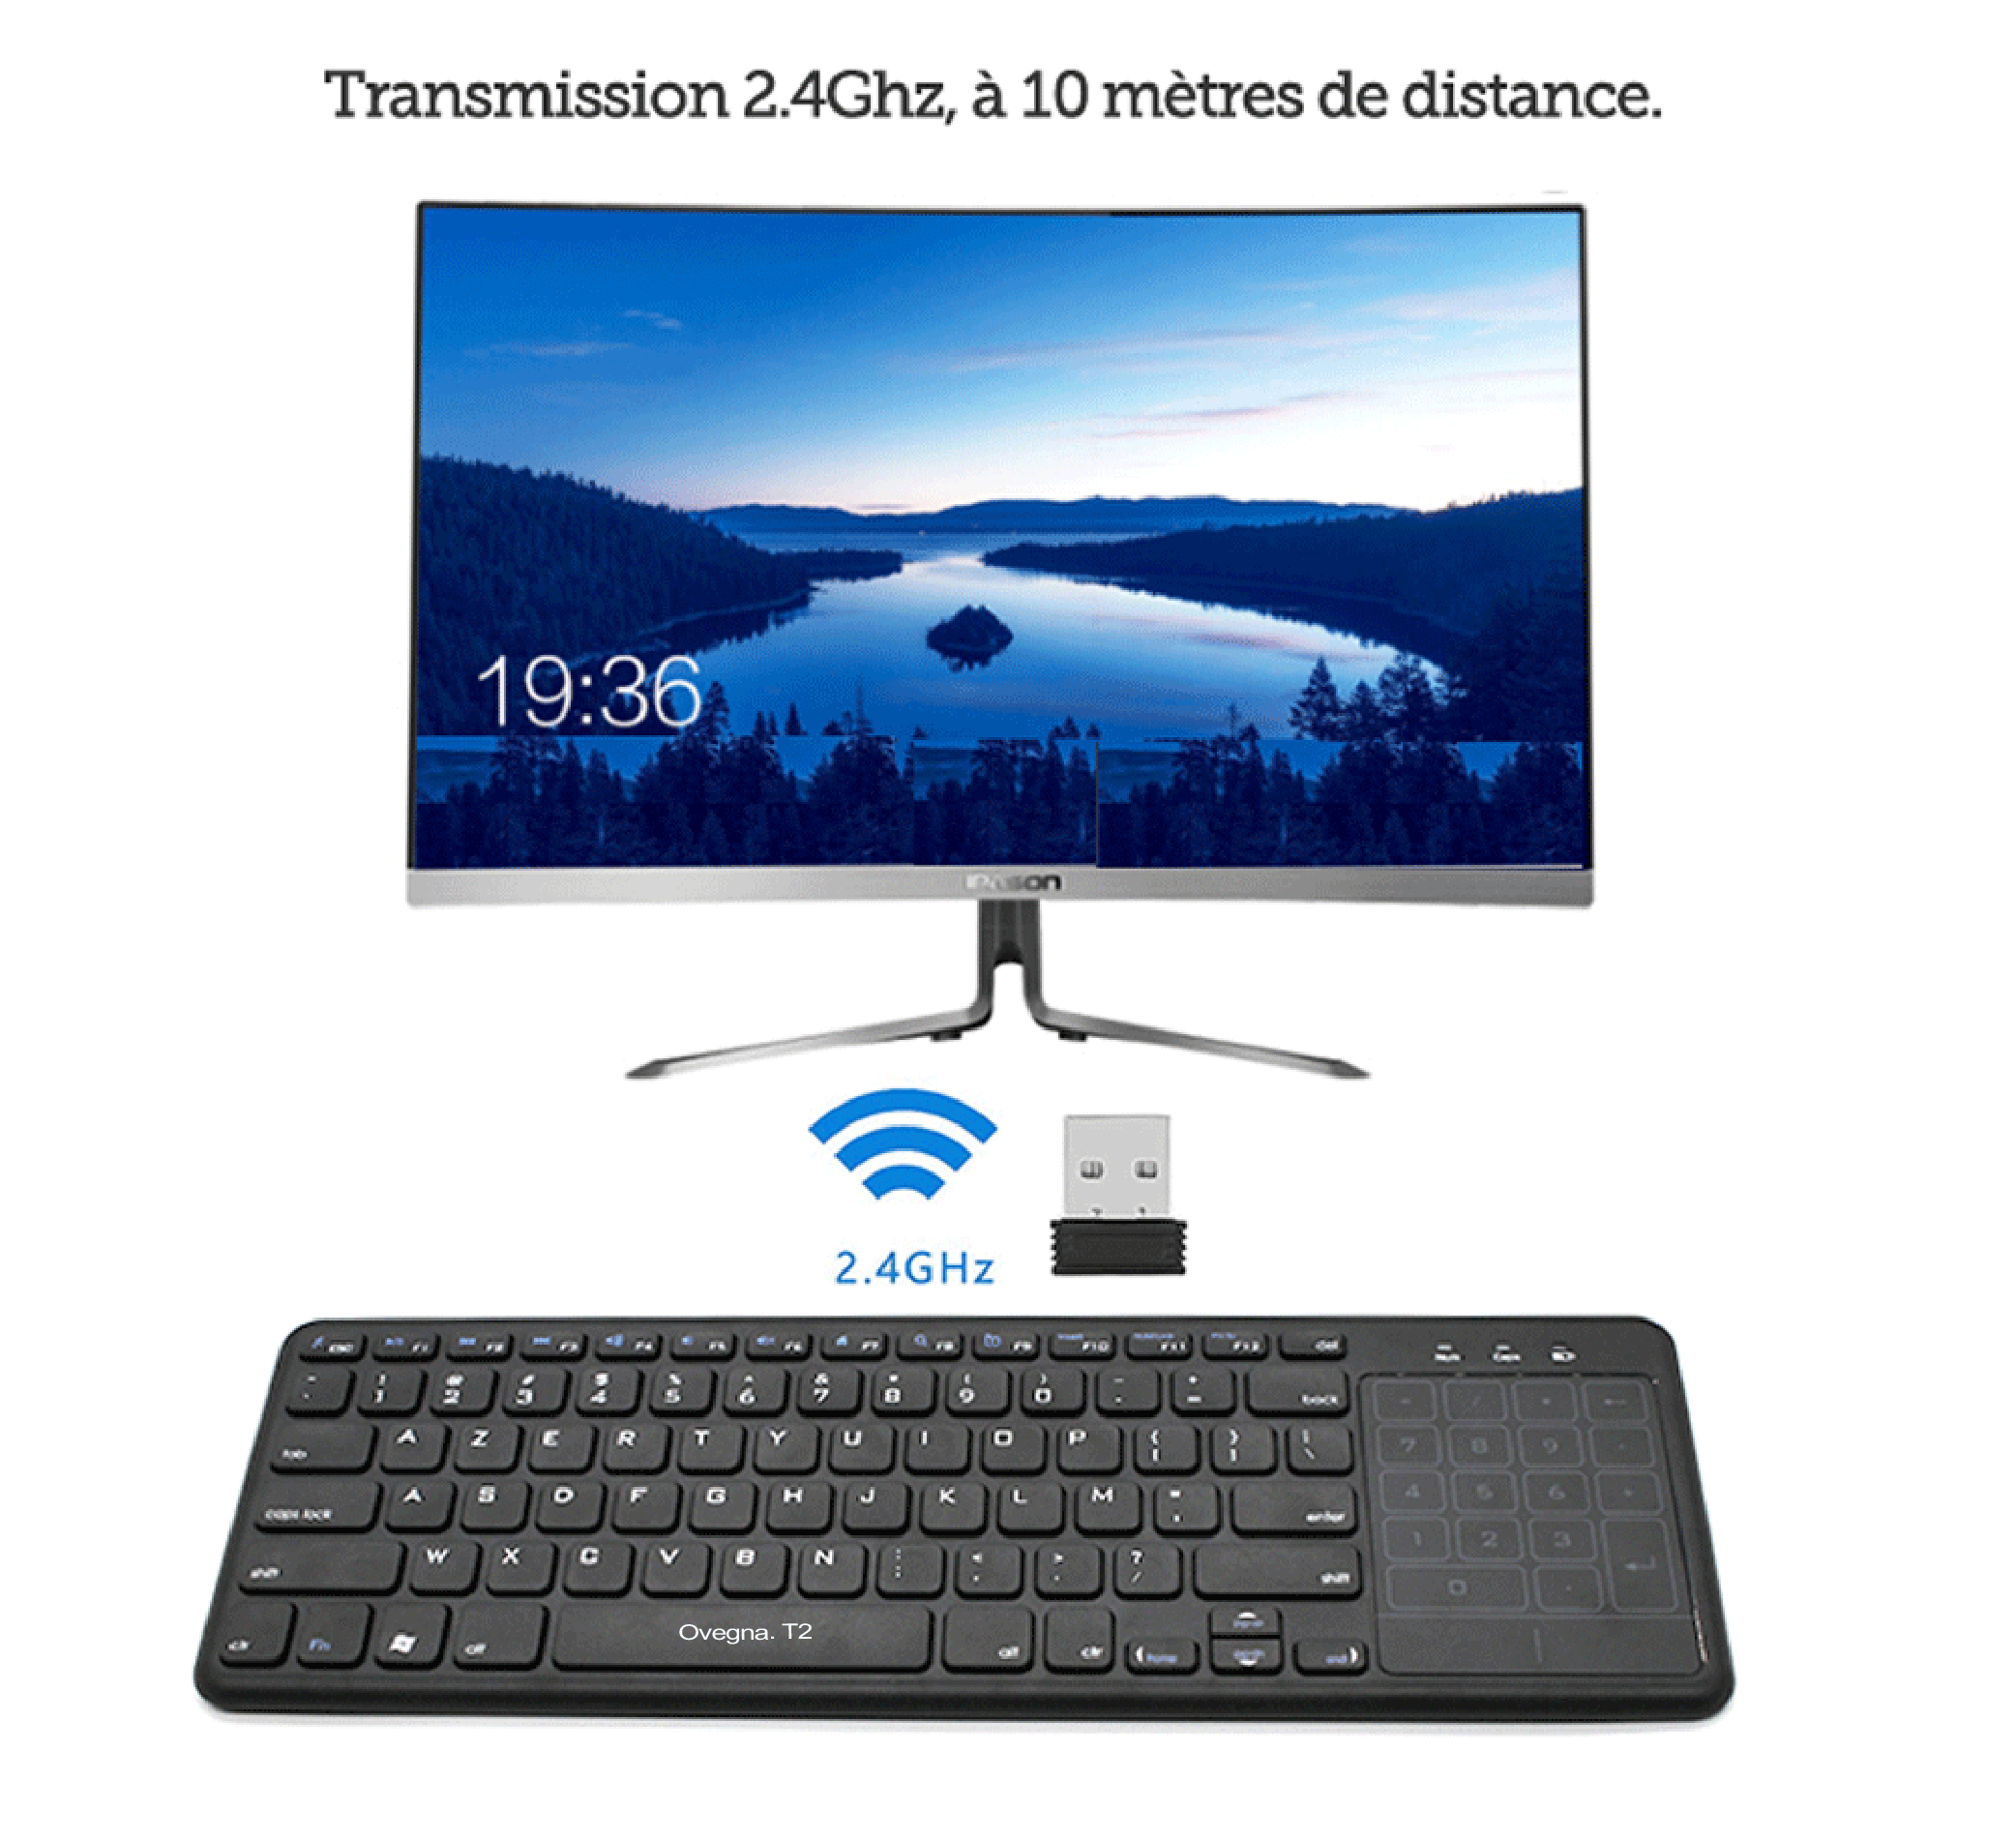 Ovegna T2 2.4GHz Wireless Touch Pad (AZERTY) Slim Touchpad and Number Pad ABS Plastic Coating for Smart TV, Android Box, Raspberry, Mac OS, Linux, Android, Windows, HTPC Hover